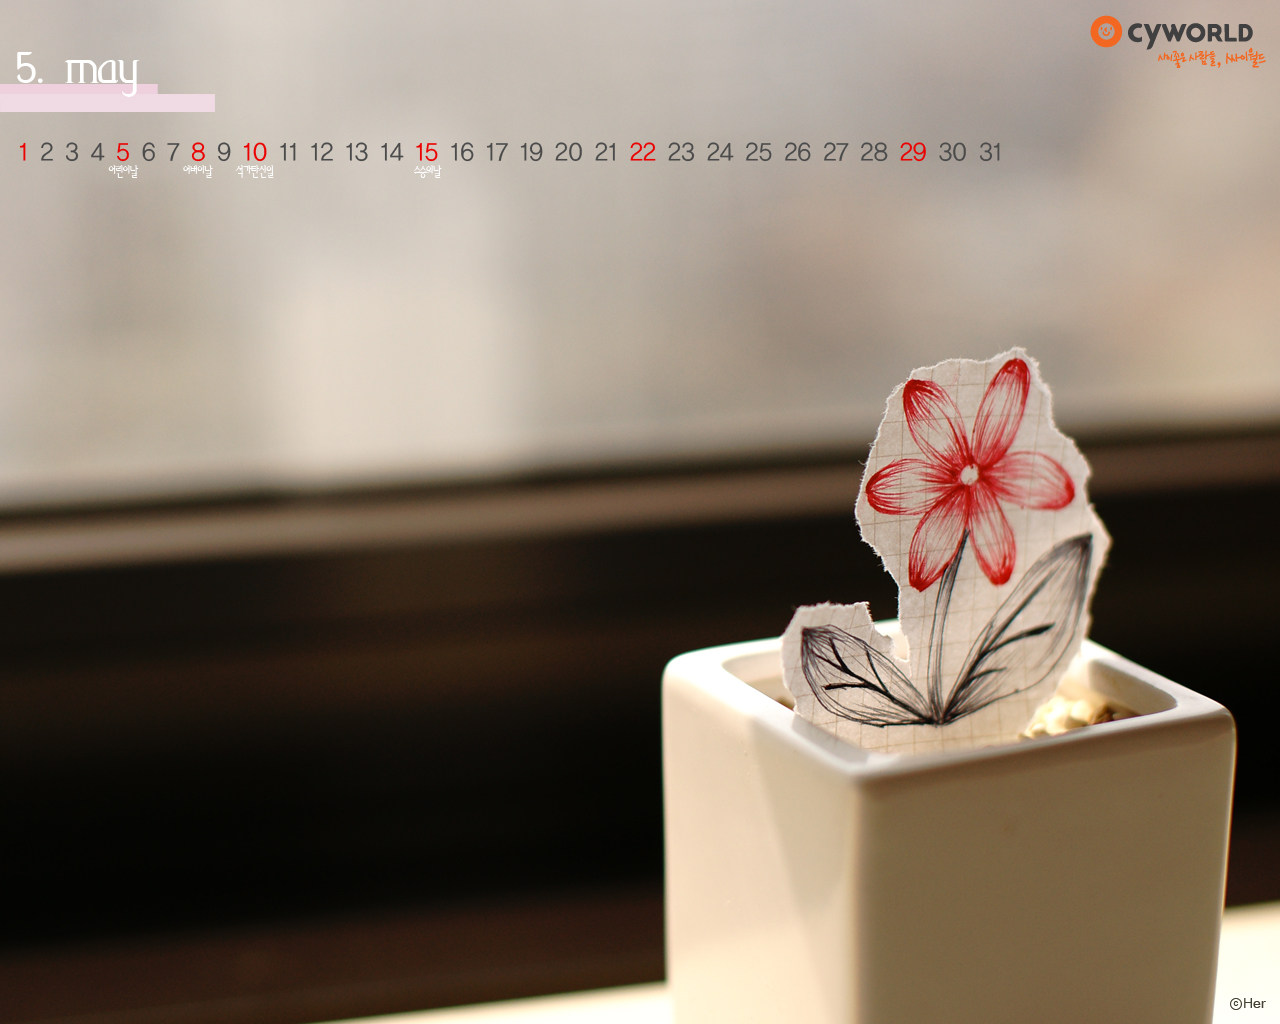 In January Calendar Wallpaper 29623